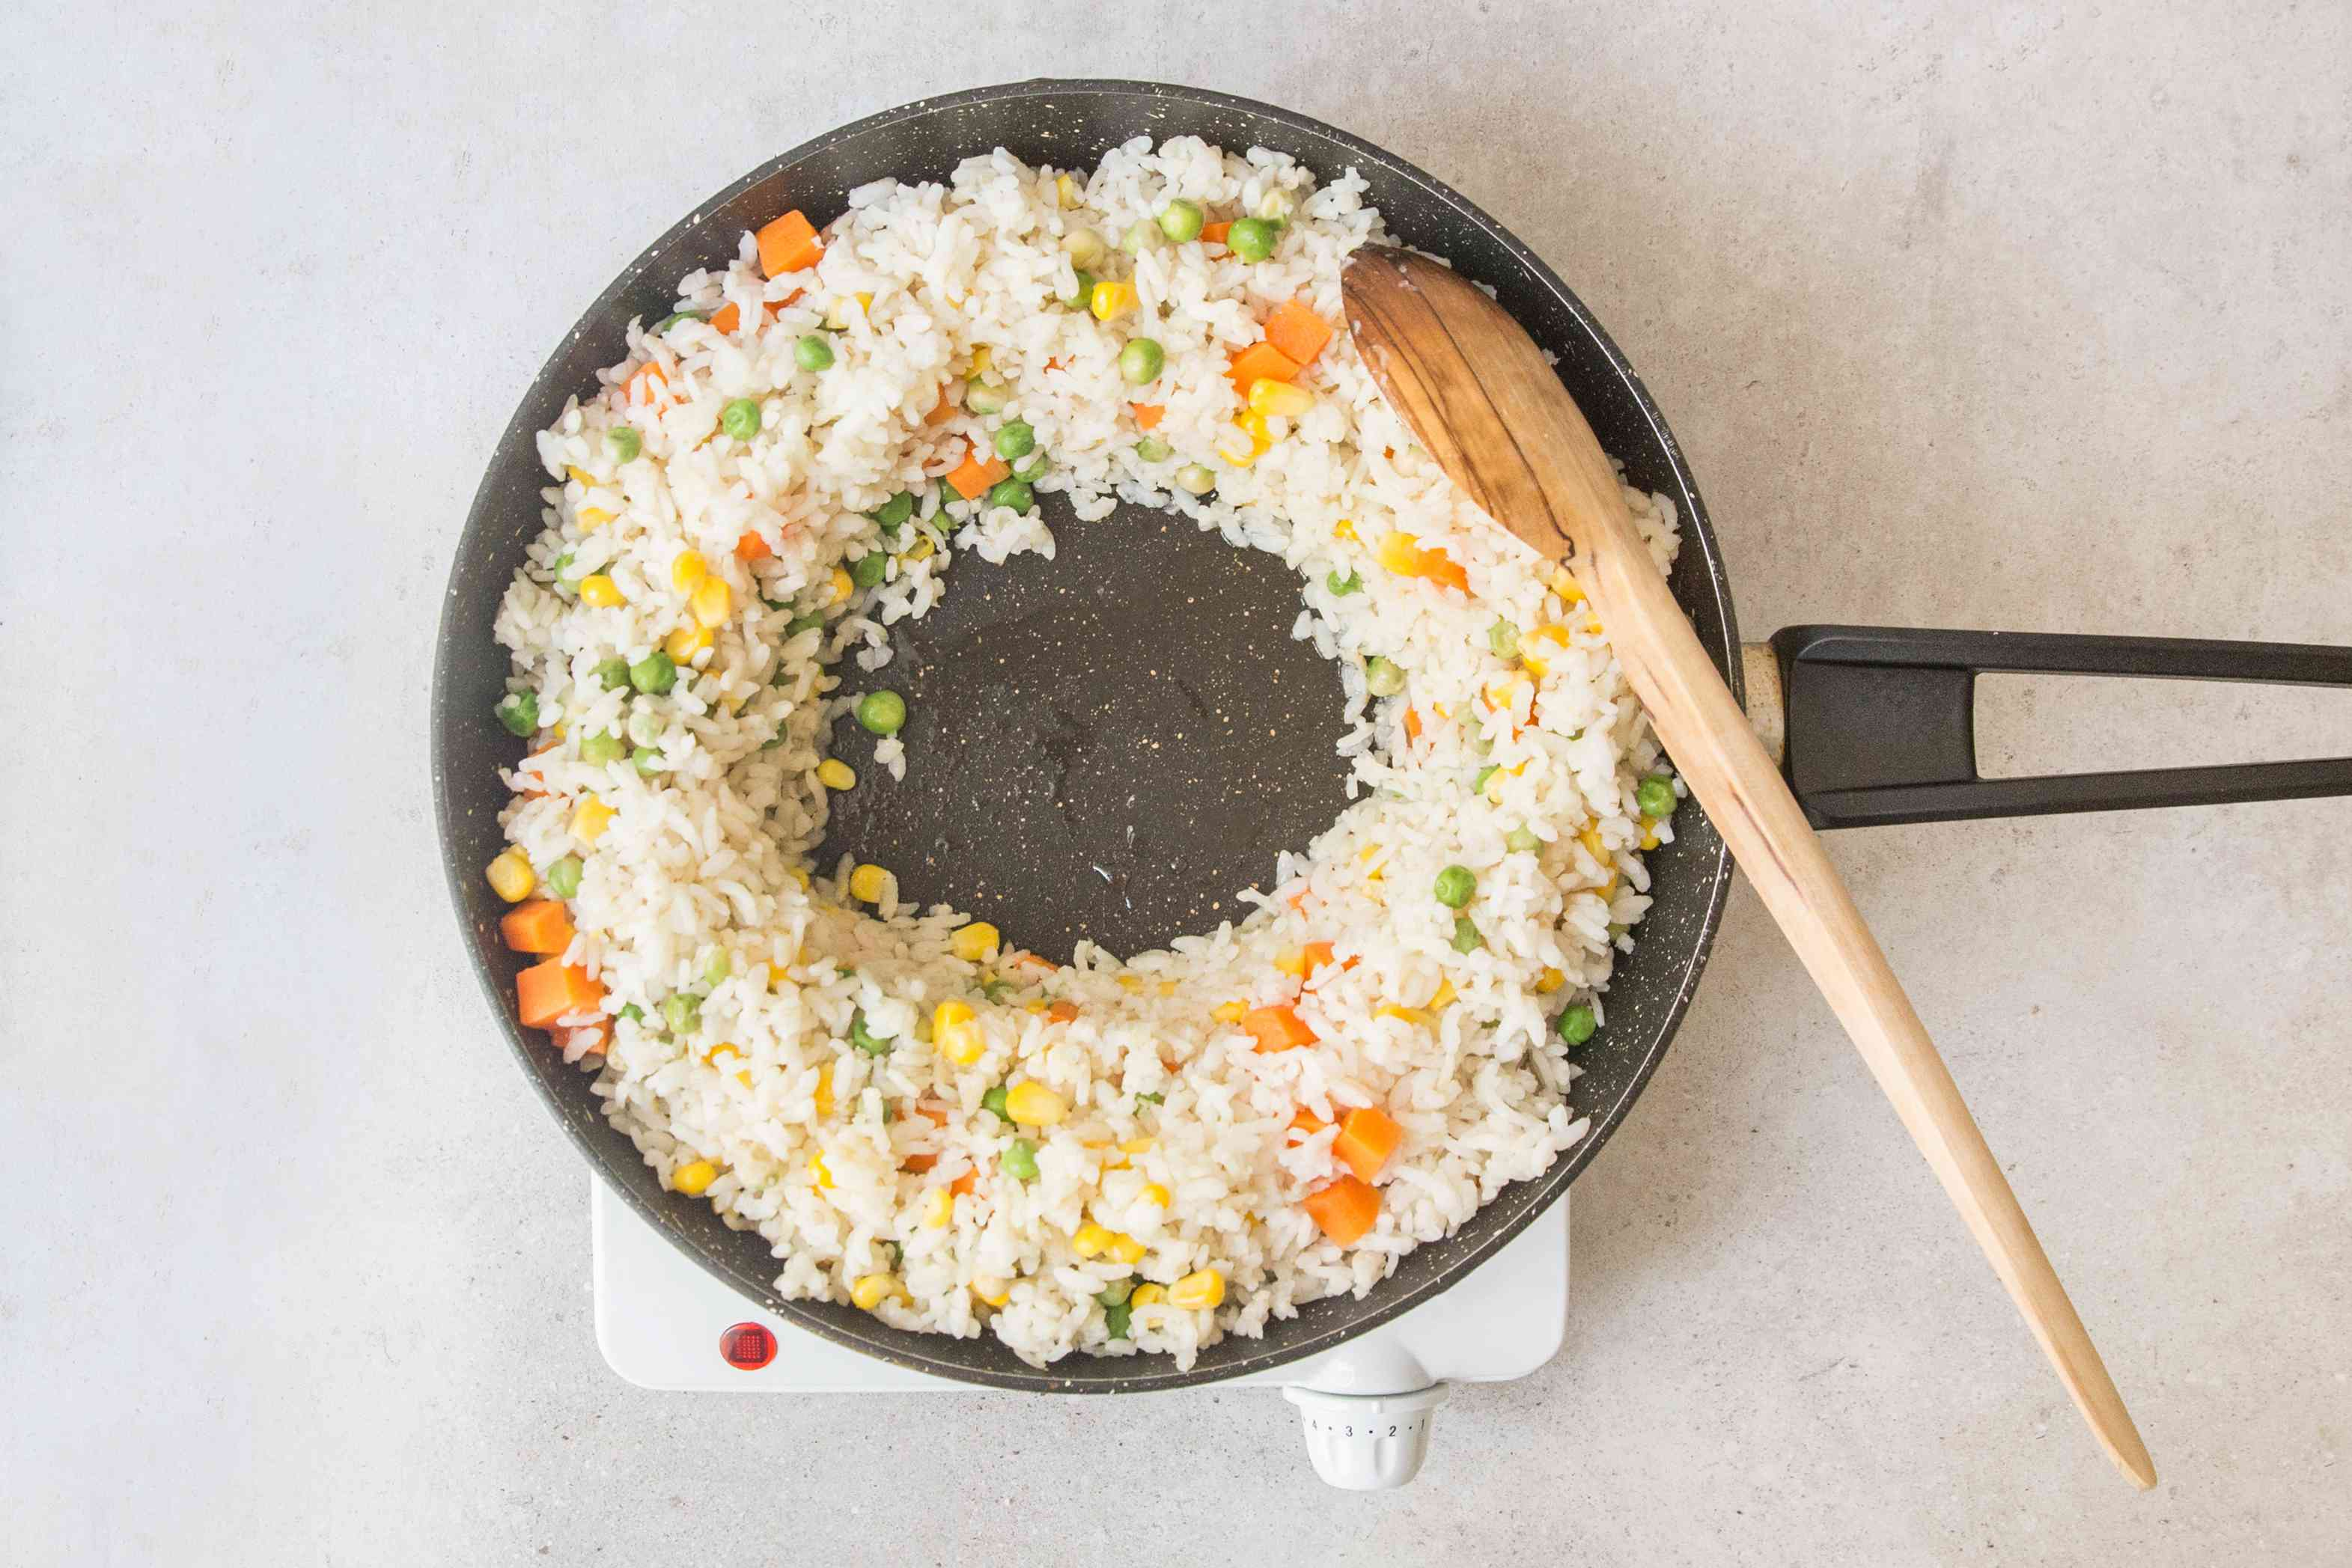 Push rice and vegetables in pan